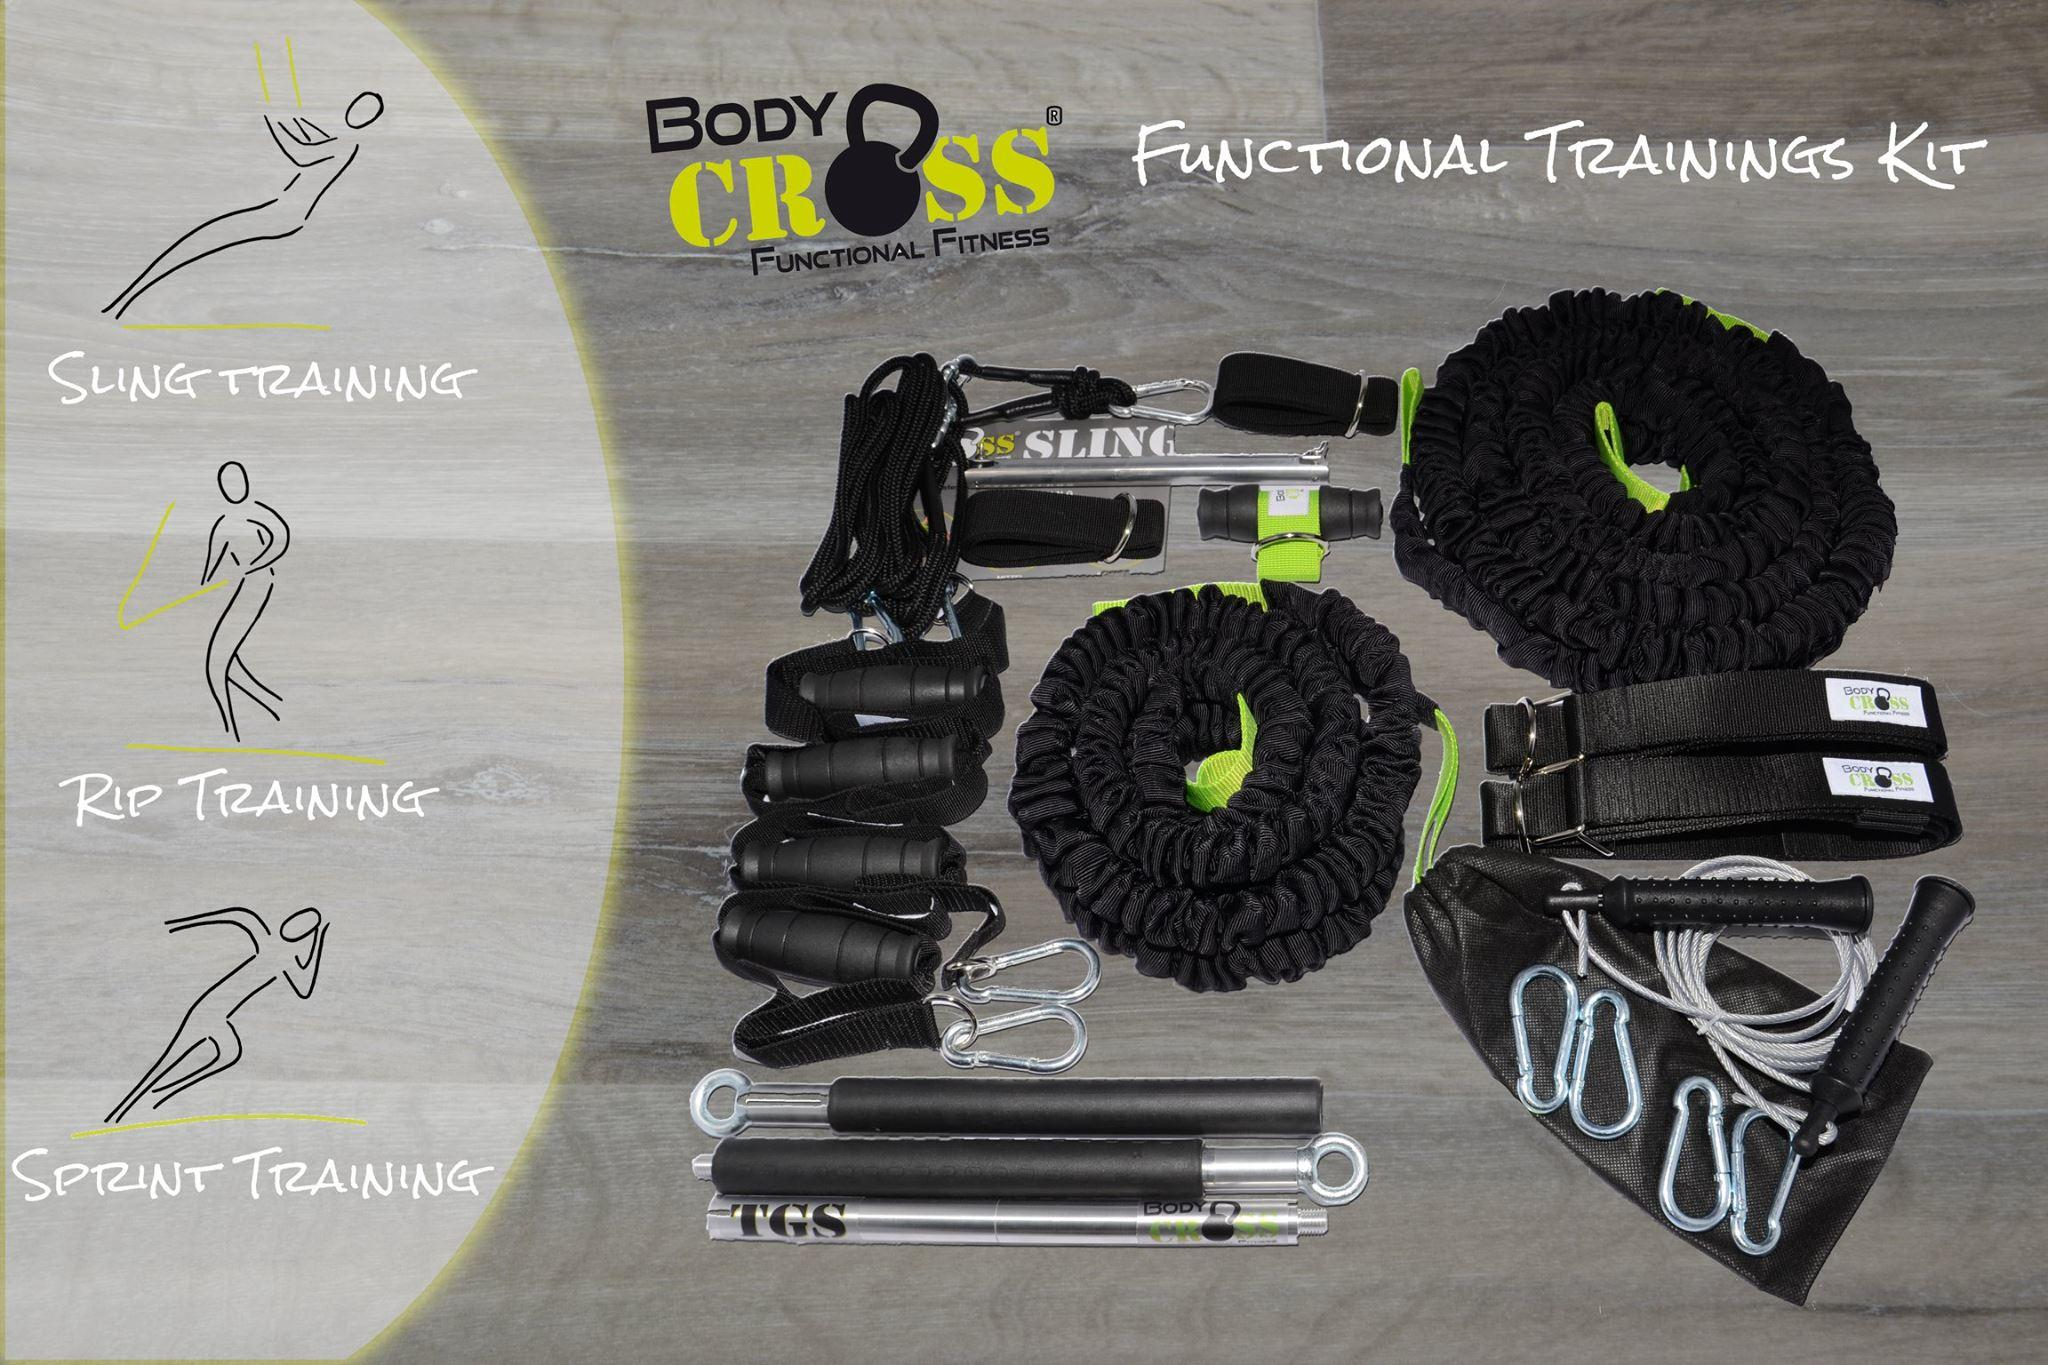 Functional Trainings Kit